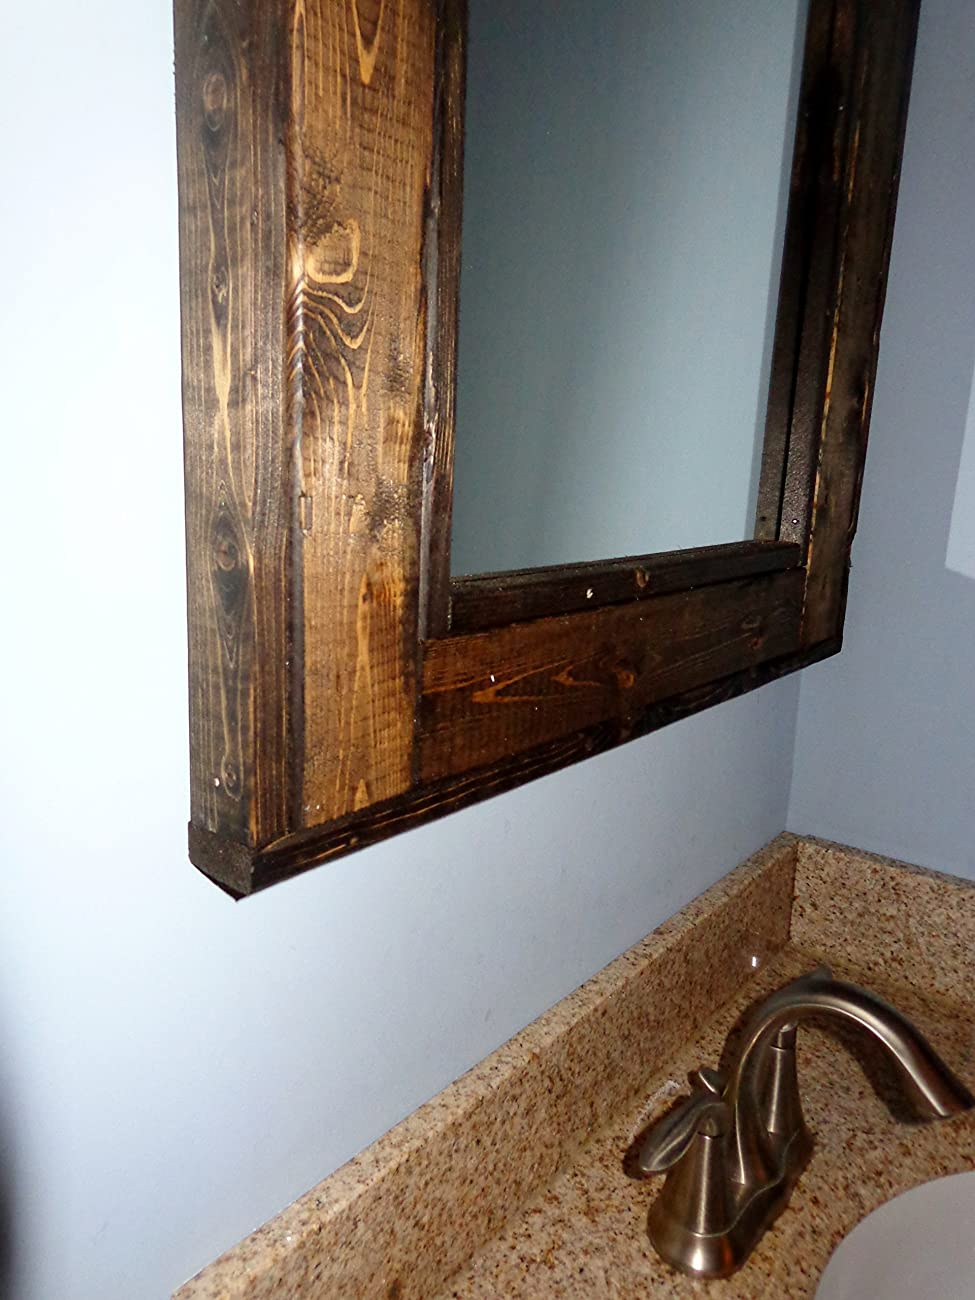 Bathroom Vanity Window Mirror - Reclaimed Wood Mirror - Large Wall Mirror - Rustic Modern Home - Home Decor - Mirror - Housewares - Woodwork	 1